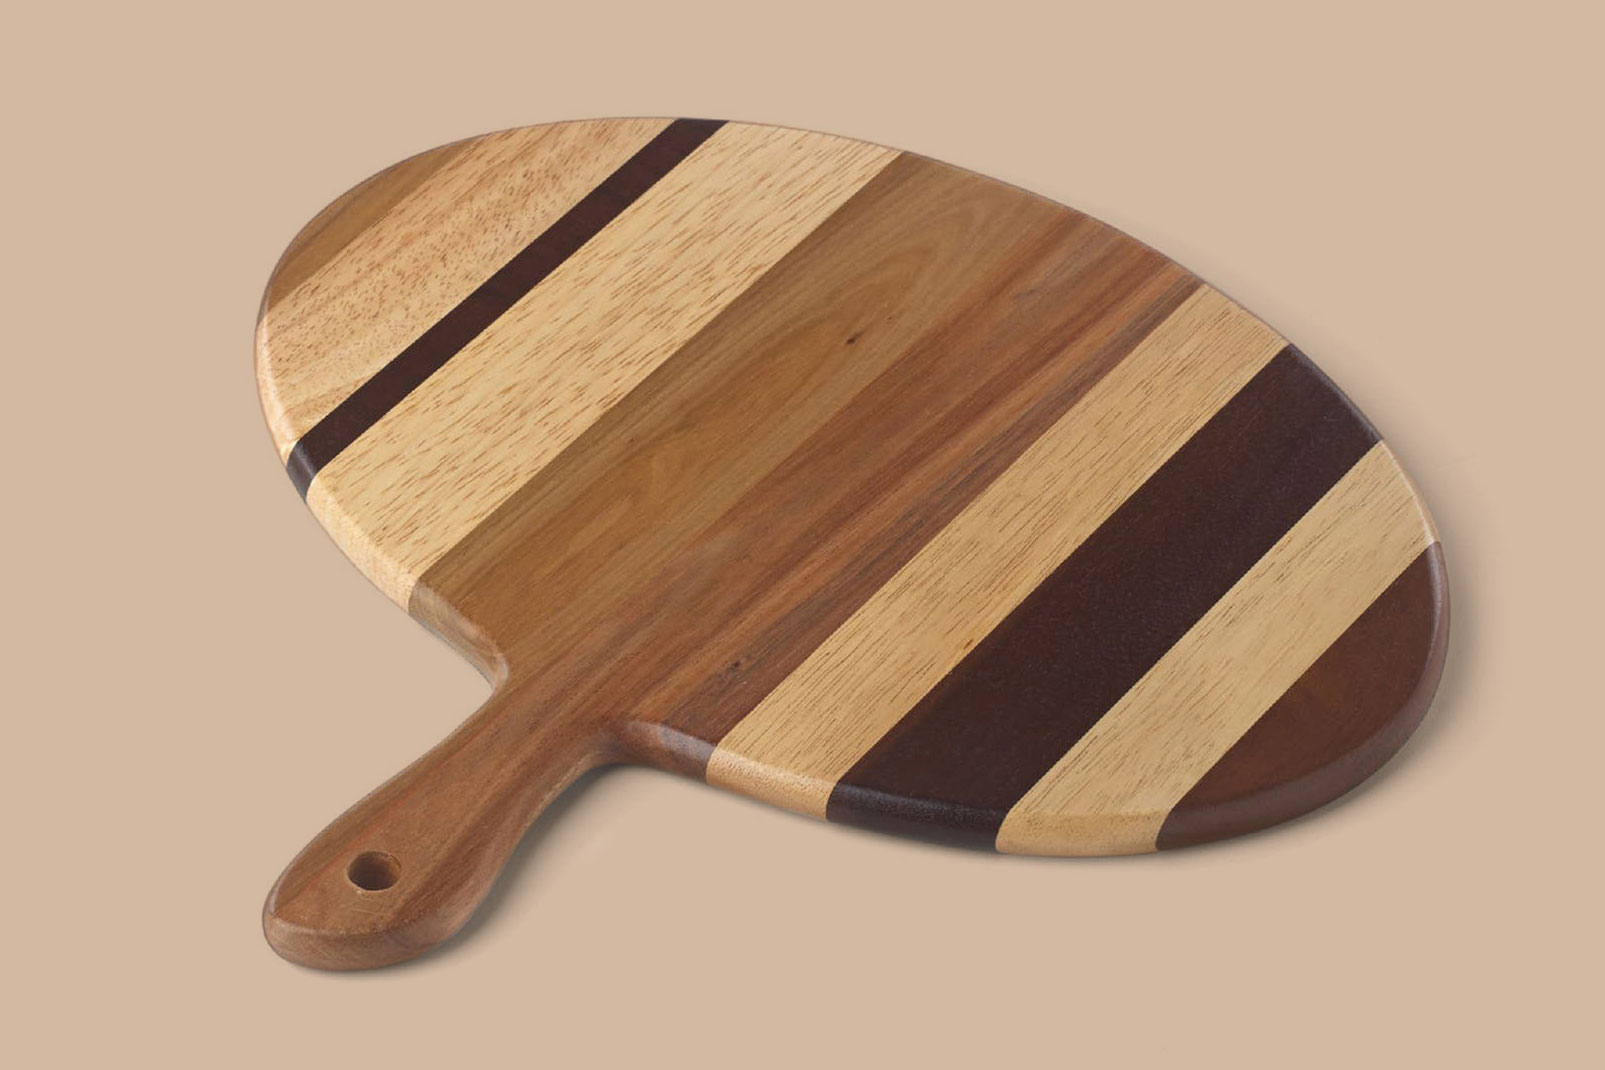 oval acadia wood serving board